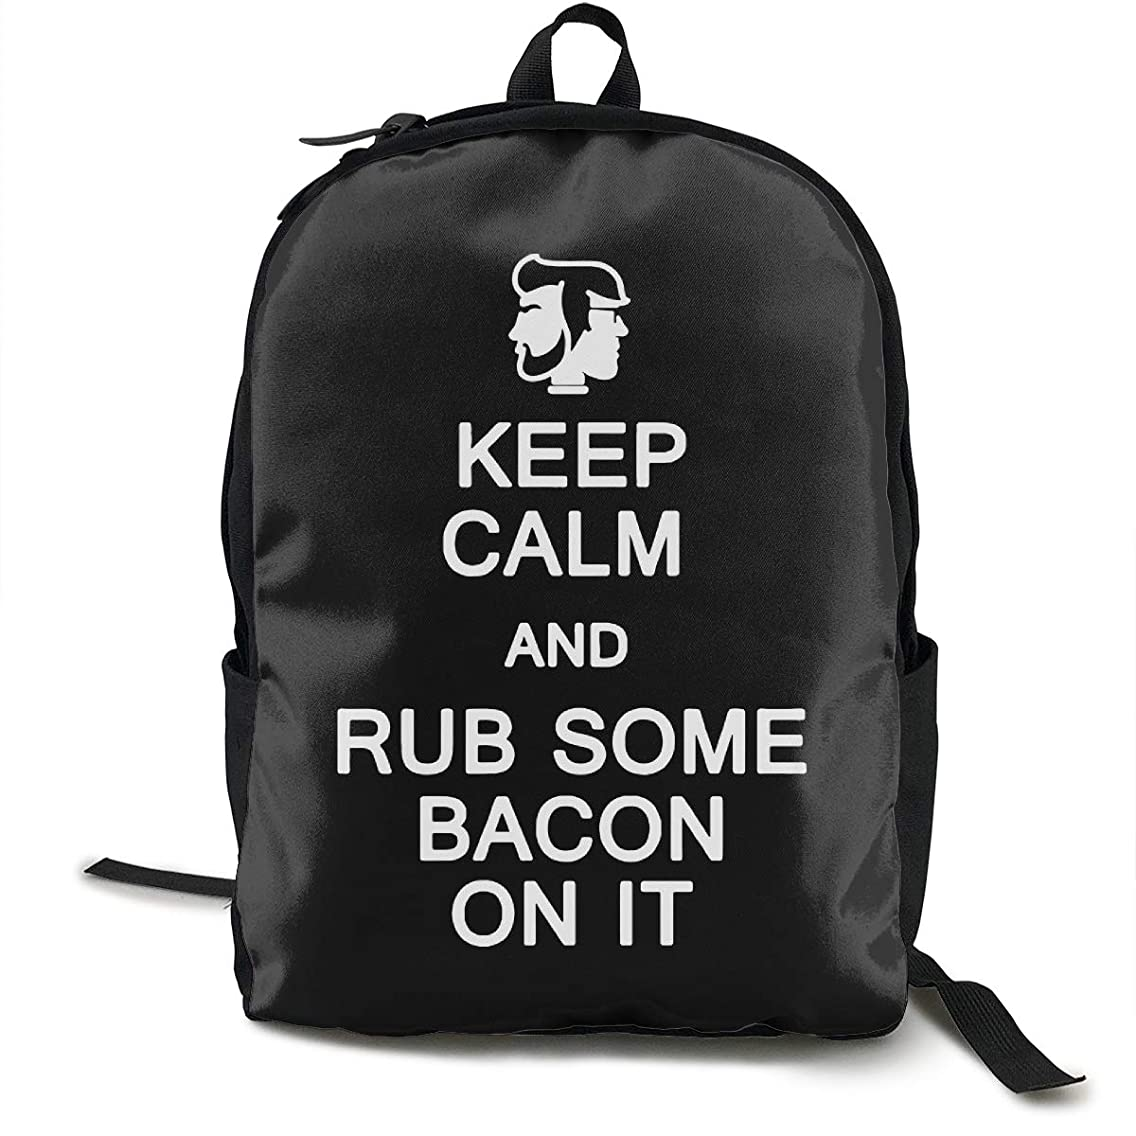 Keep Calm And Love The Dolan Twins 2019 New Style Casual Shoulders Multipurpose Backpack School Backpack Travel Rucksack Bag Laptop Daypack For Youth Men And Women